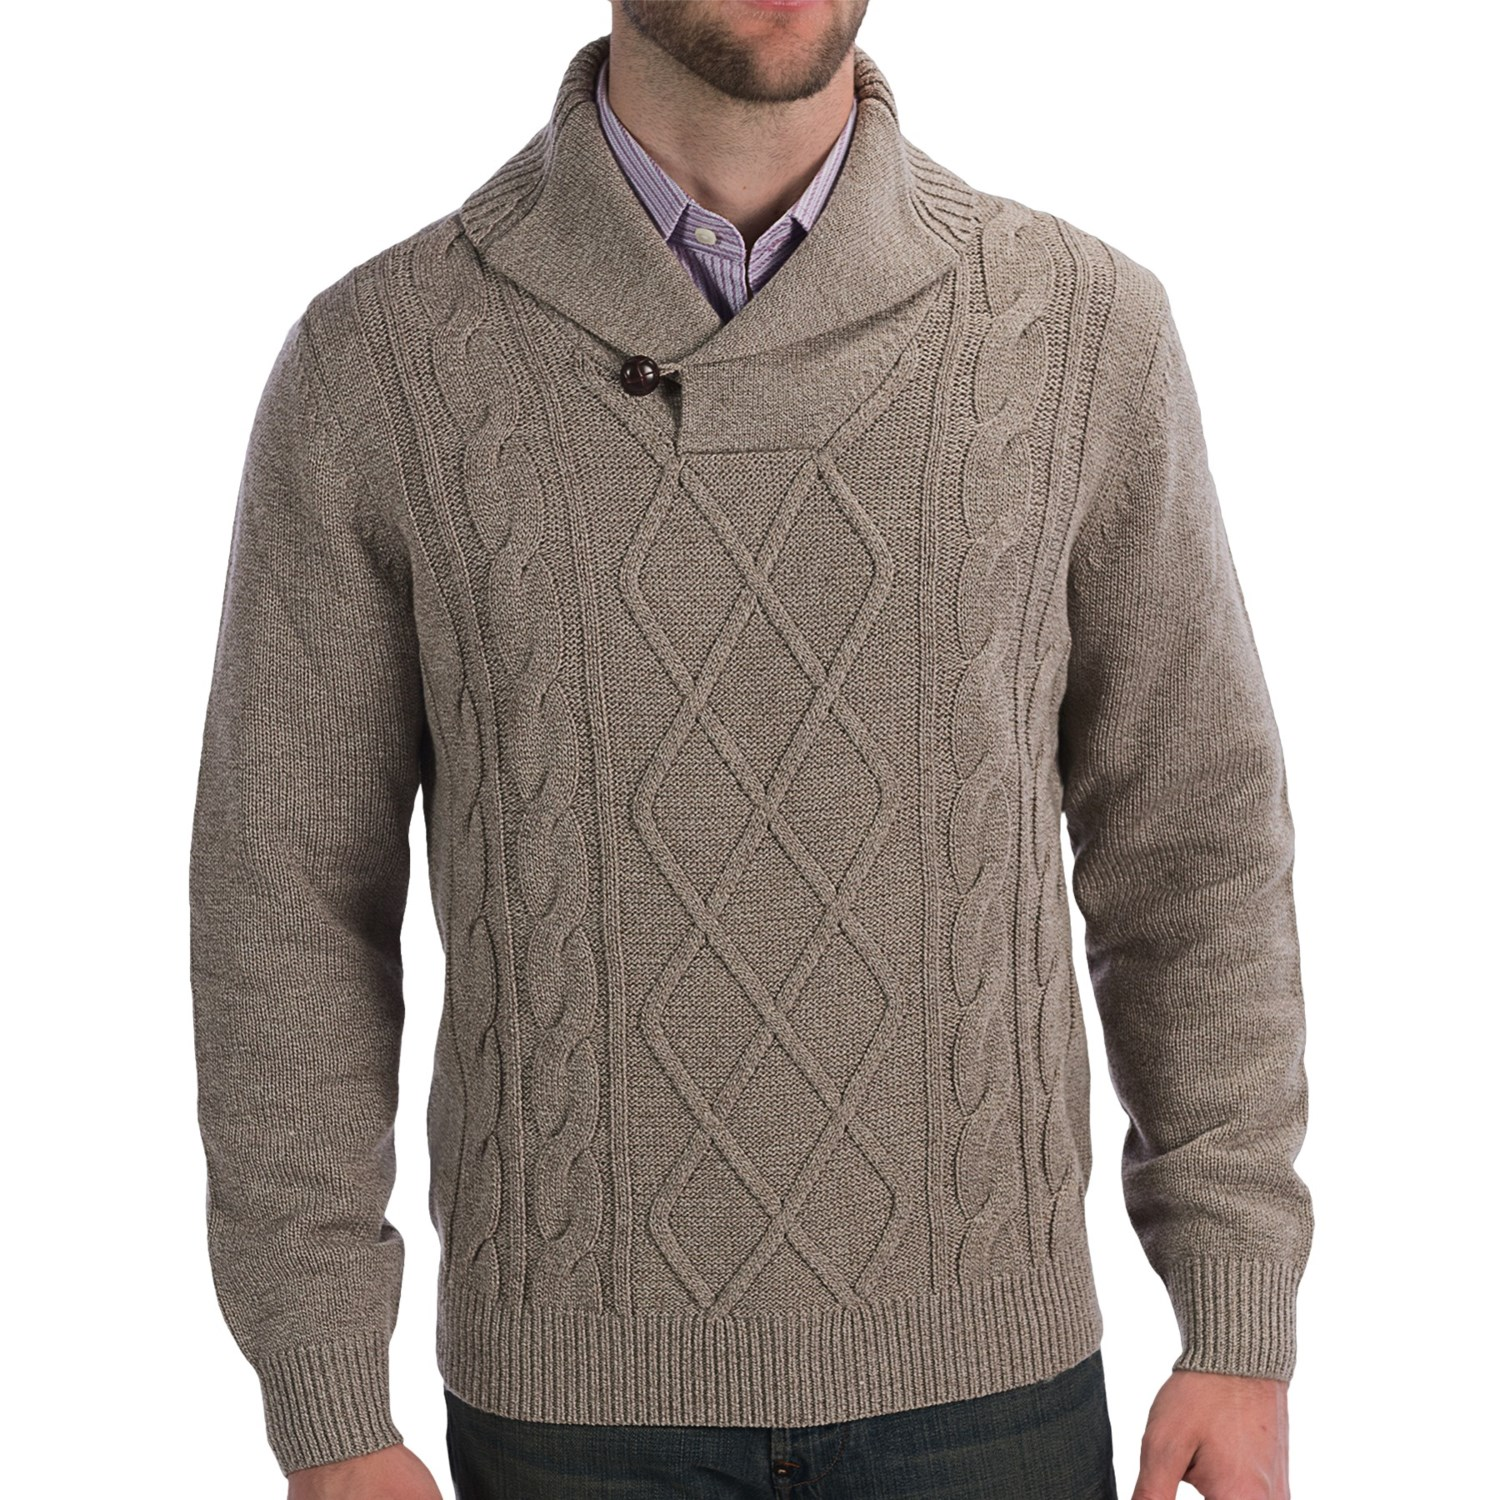 Knitting Sweaters For Men : Toscano cable knit sweater for men save